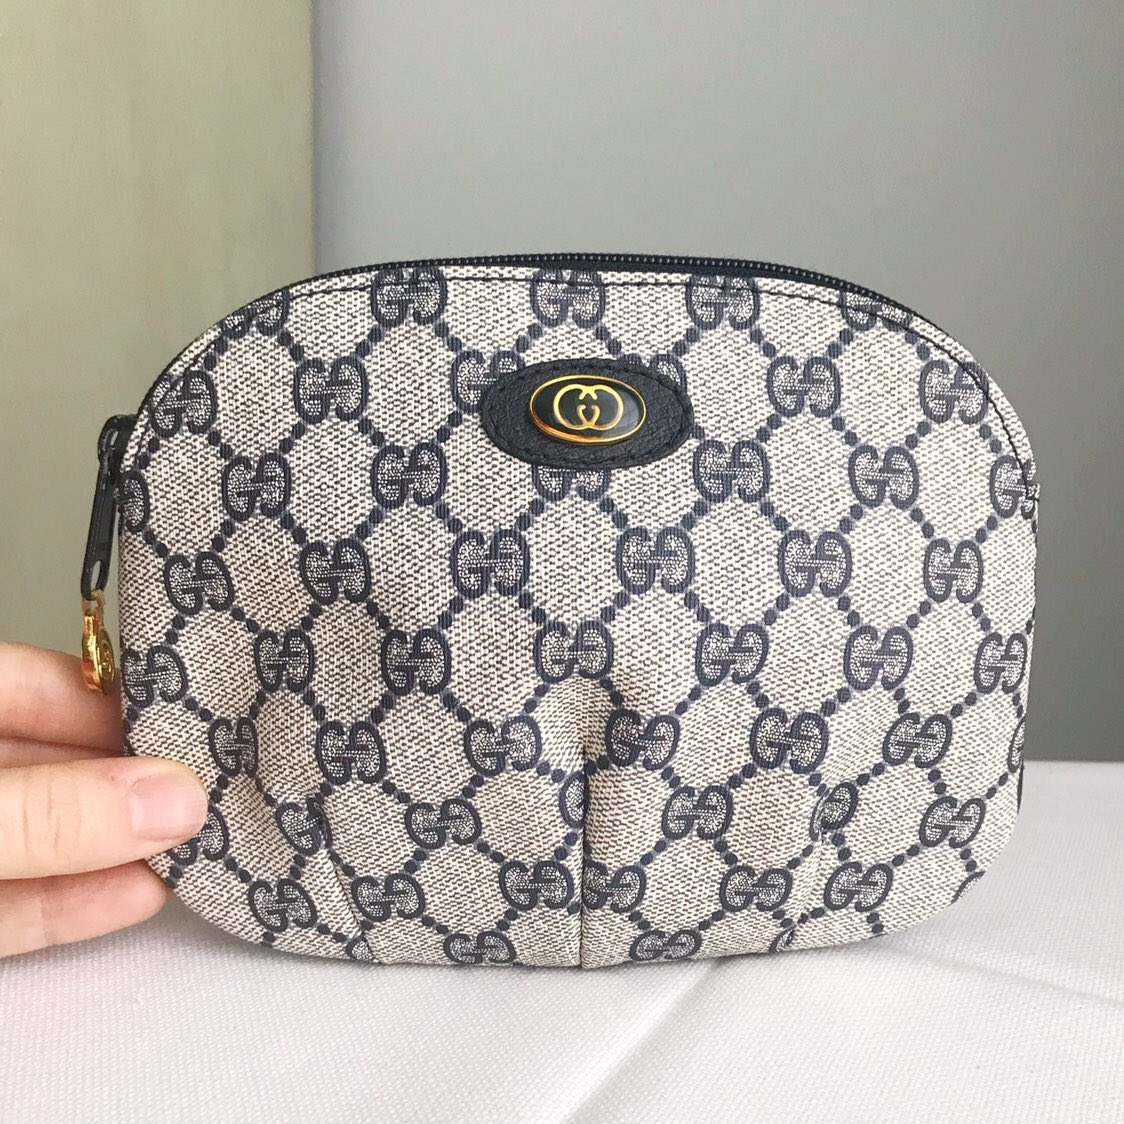 141494e4f8042d #GUCCI Vintage Accessory Collection Pouch Clutch/ Unisex Case #Makeup  Cosmetic Toiletry Pouch https://etsy.me/2UEdV0m #etsy #etsyseller  #vintagegucci ...